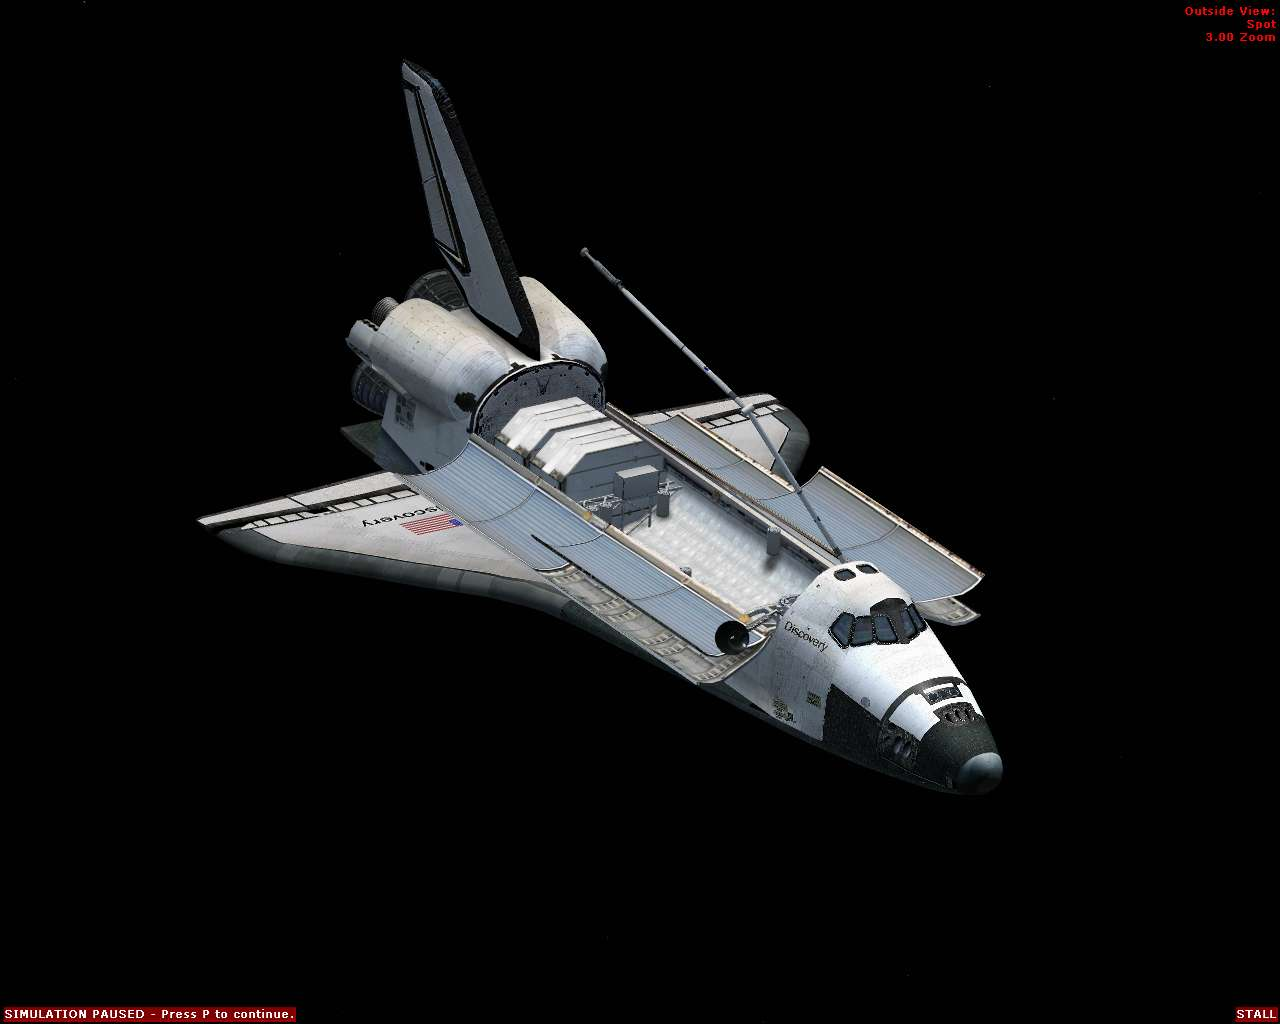 space shuttle flying - photo #18